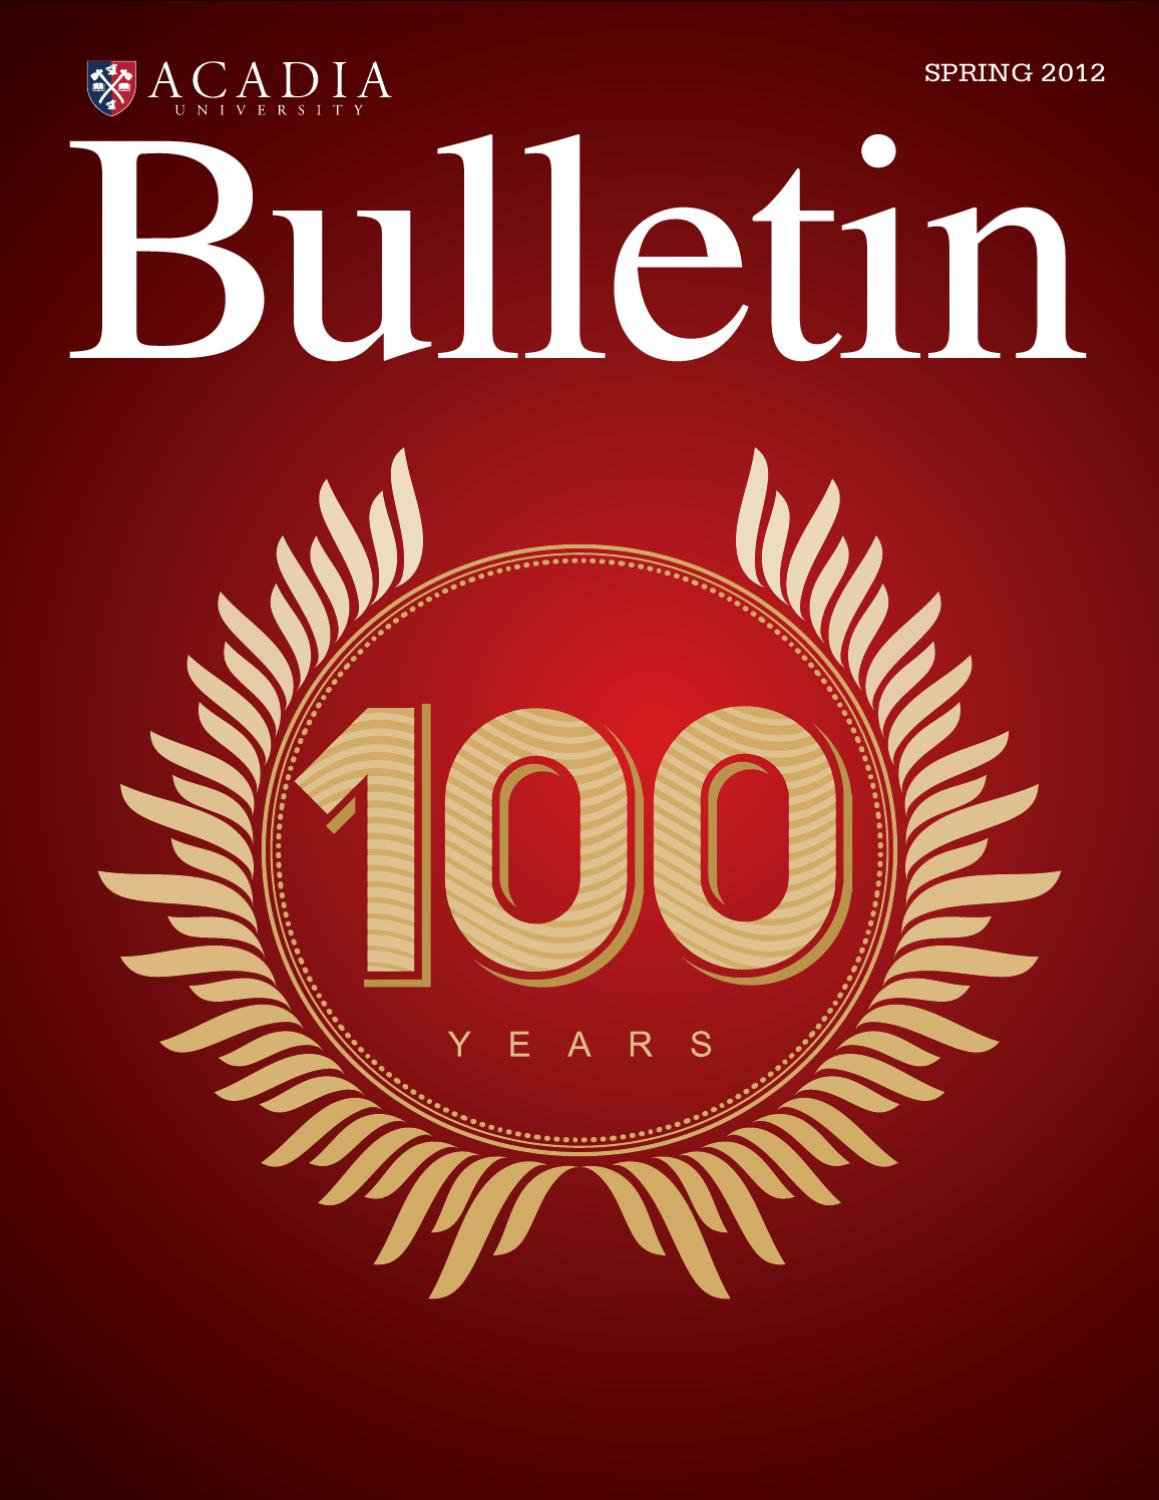 The Bulletin Spring 2012 by Acadia Advancement - issuu